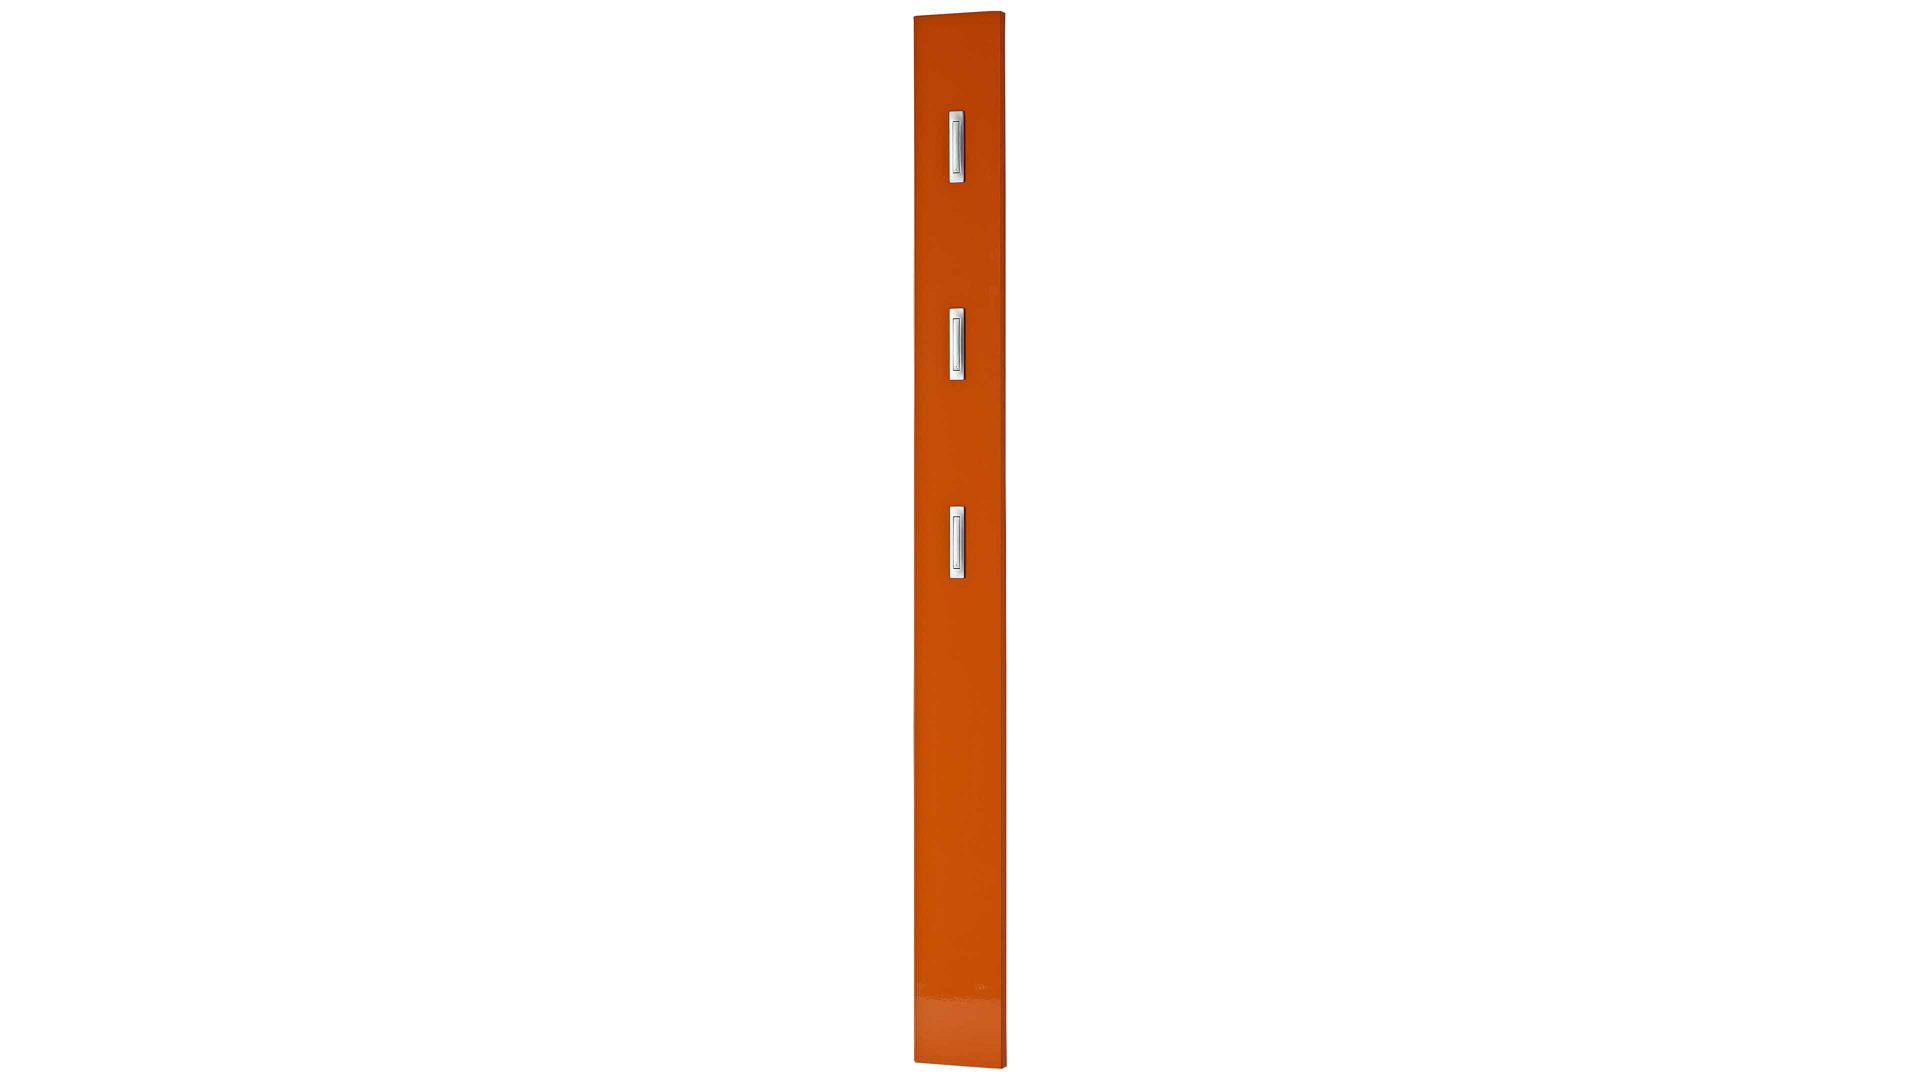 Wandgarderobe Germania aus Holz in Orange Wandgarderobe Colorado mit Garderobenhaken orangefarbene Hochglanzoberflächen - drei Klapp-Kleiderhaken